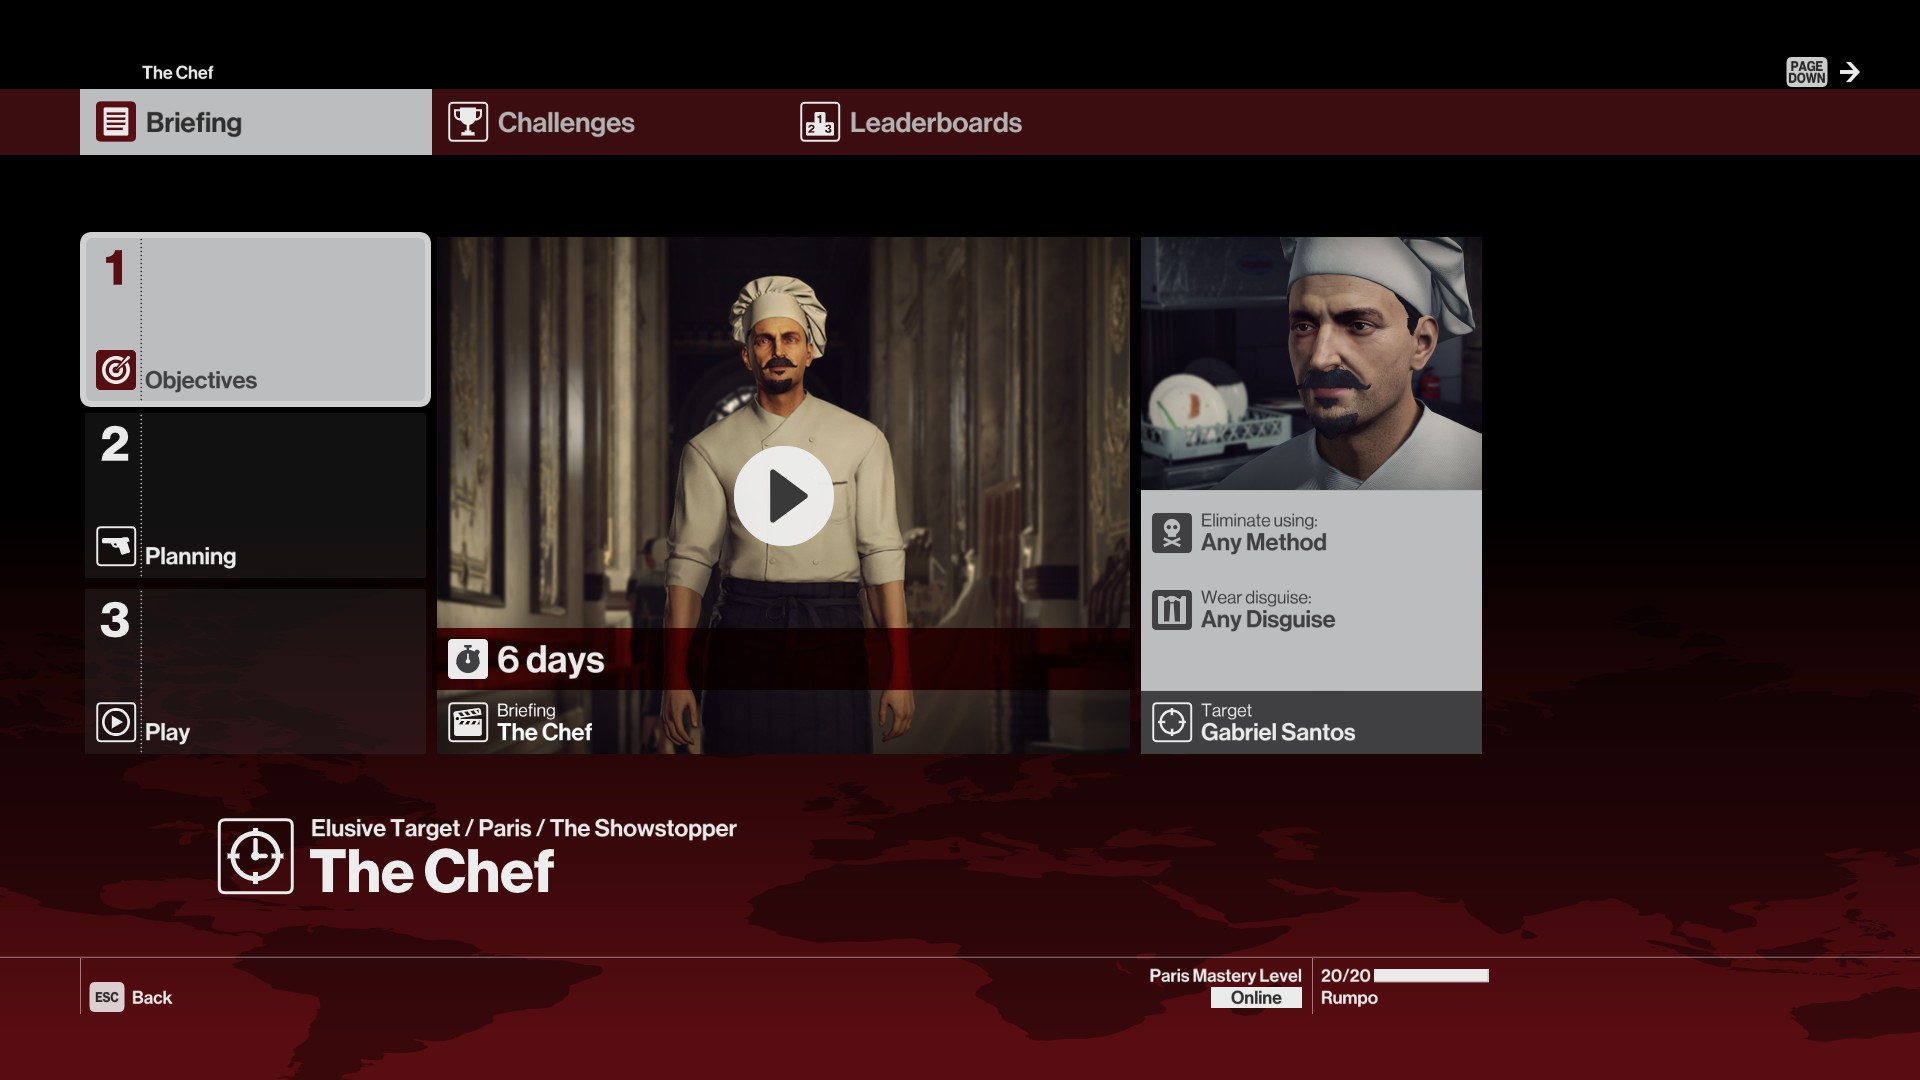 Study the in-game trailer for The Chef carefully to get hints about where you can find him.